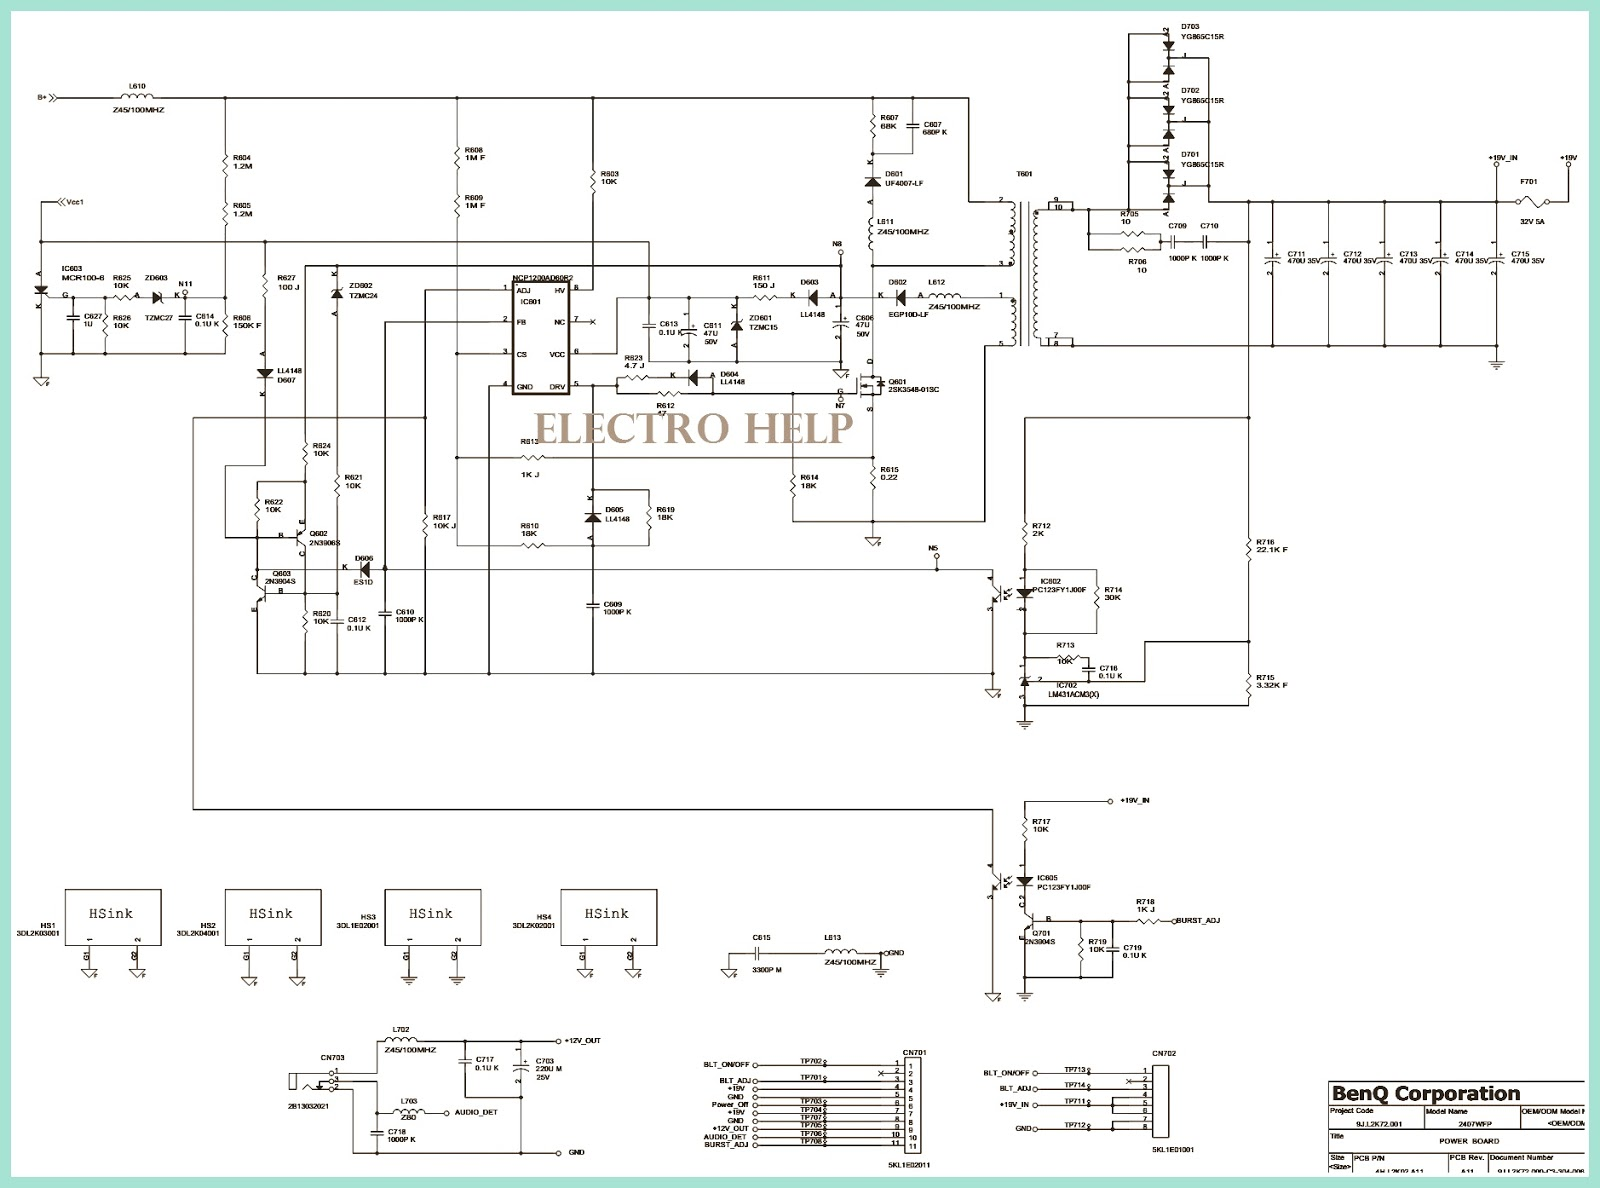 dell 2407 and benq lcd monitors power supply regulator board schematic